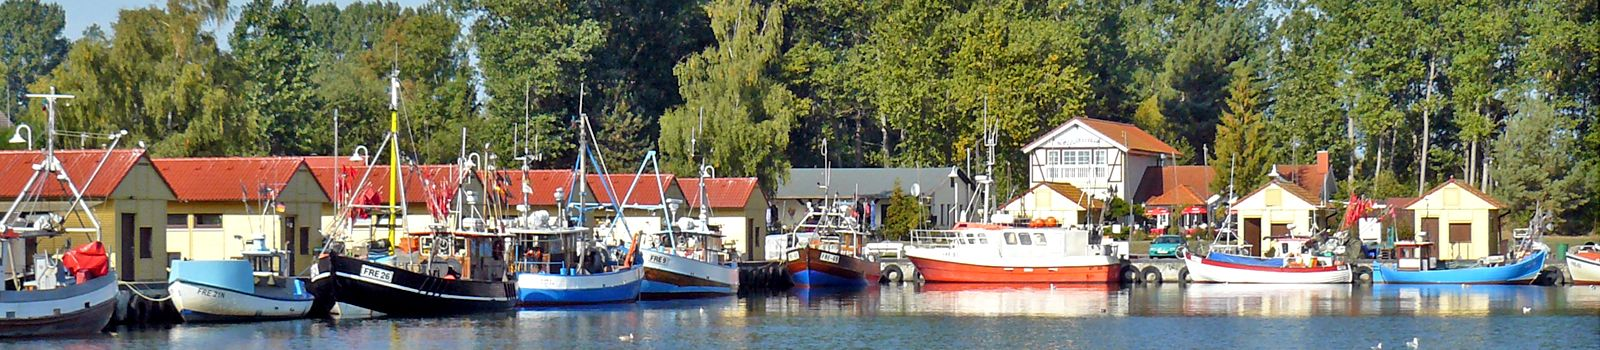 Fischereihafen in Freest